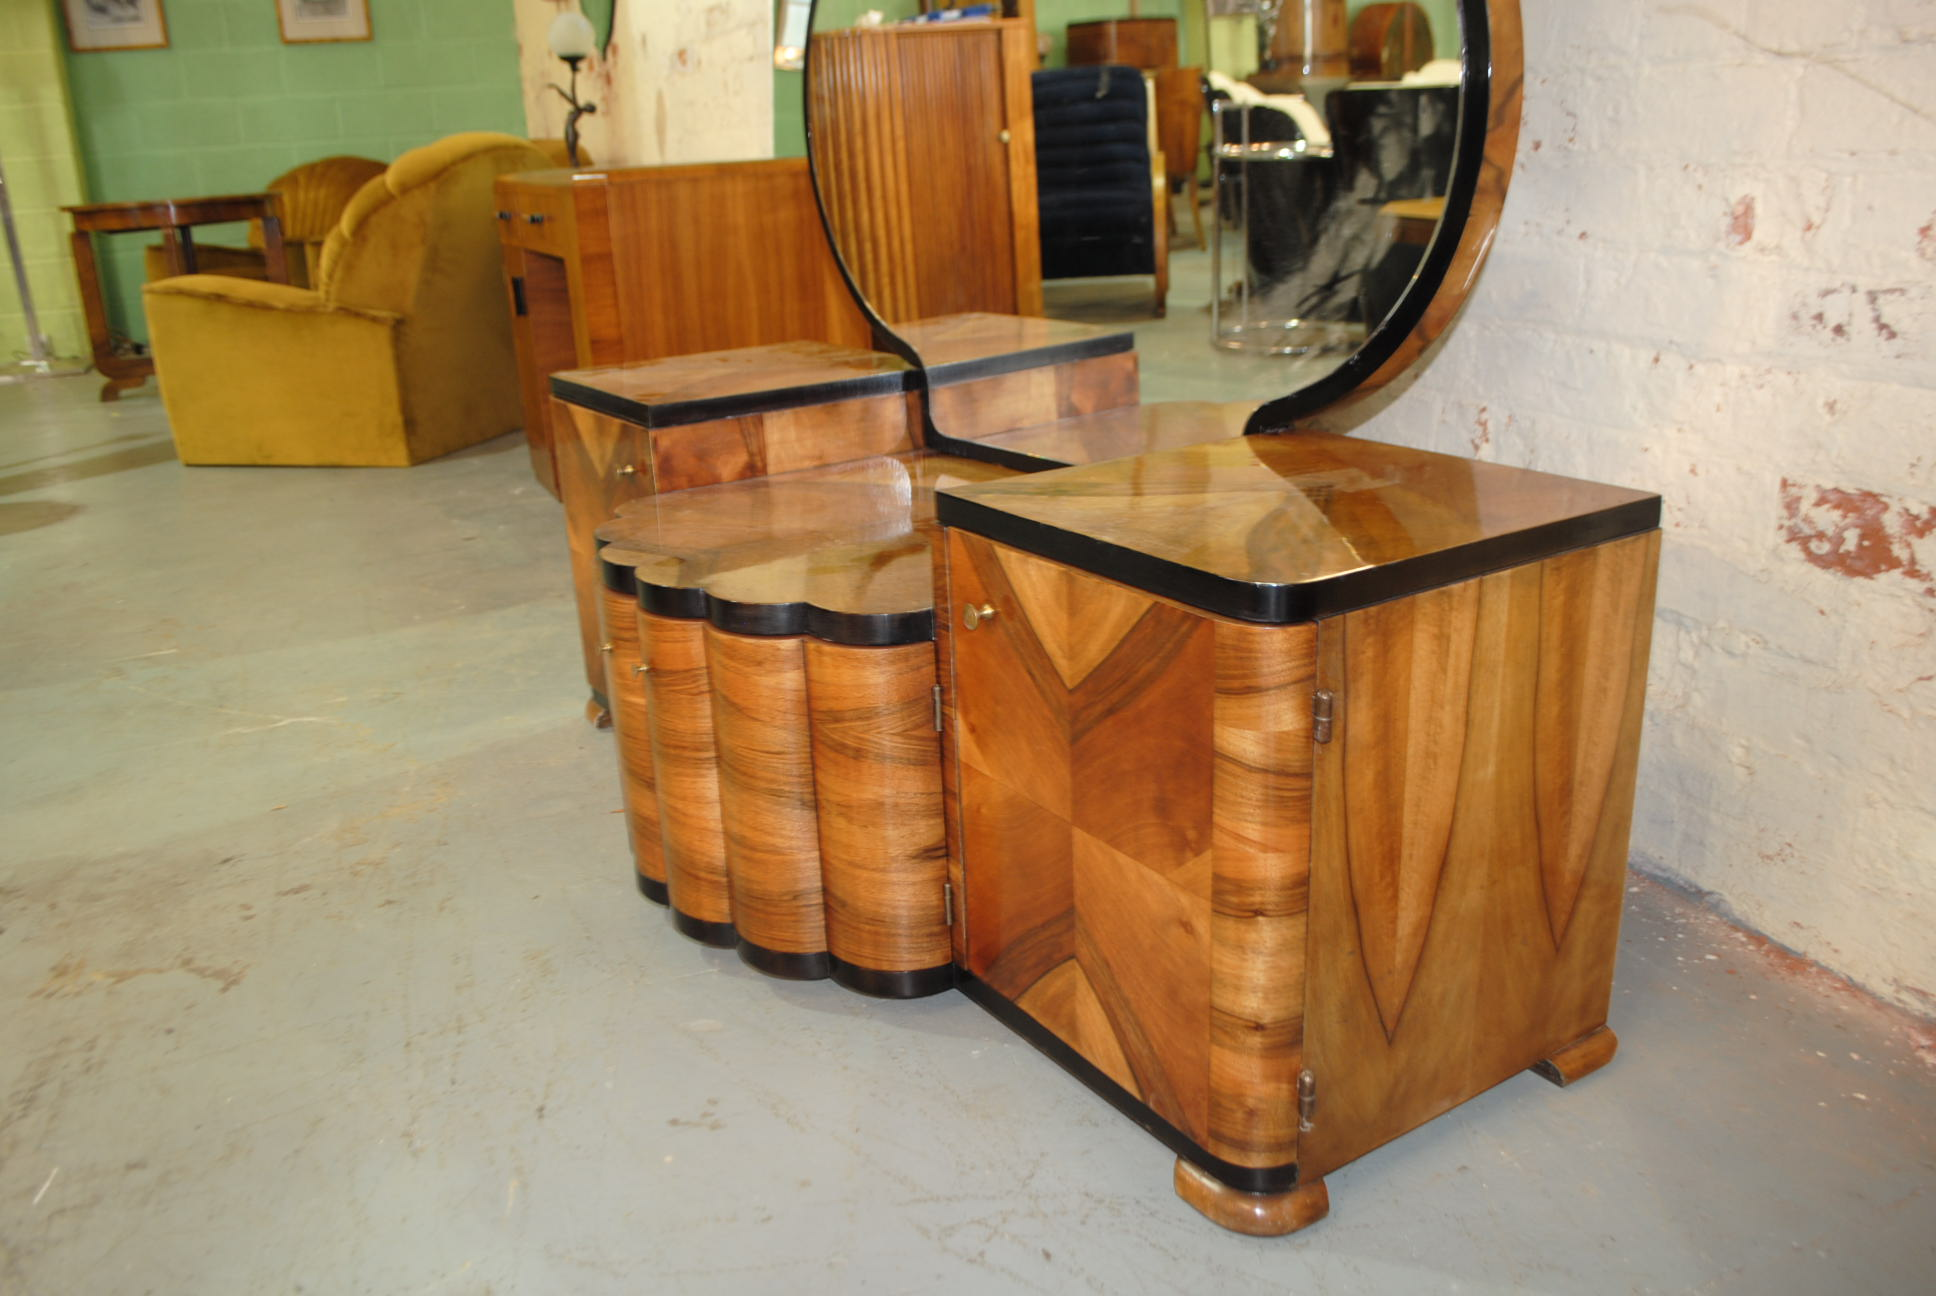 Amazing Beautiful Standout Dressing Table With Exquisite Veneer Work All Round.  Fluted Curved Centre Doors And 2 Outer Doors Allow Plenty Storage Space.